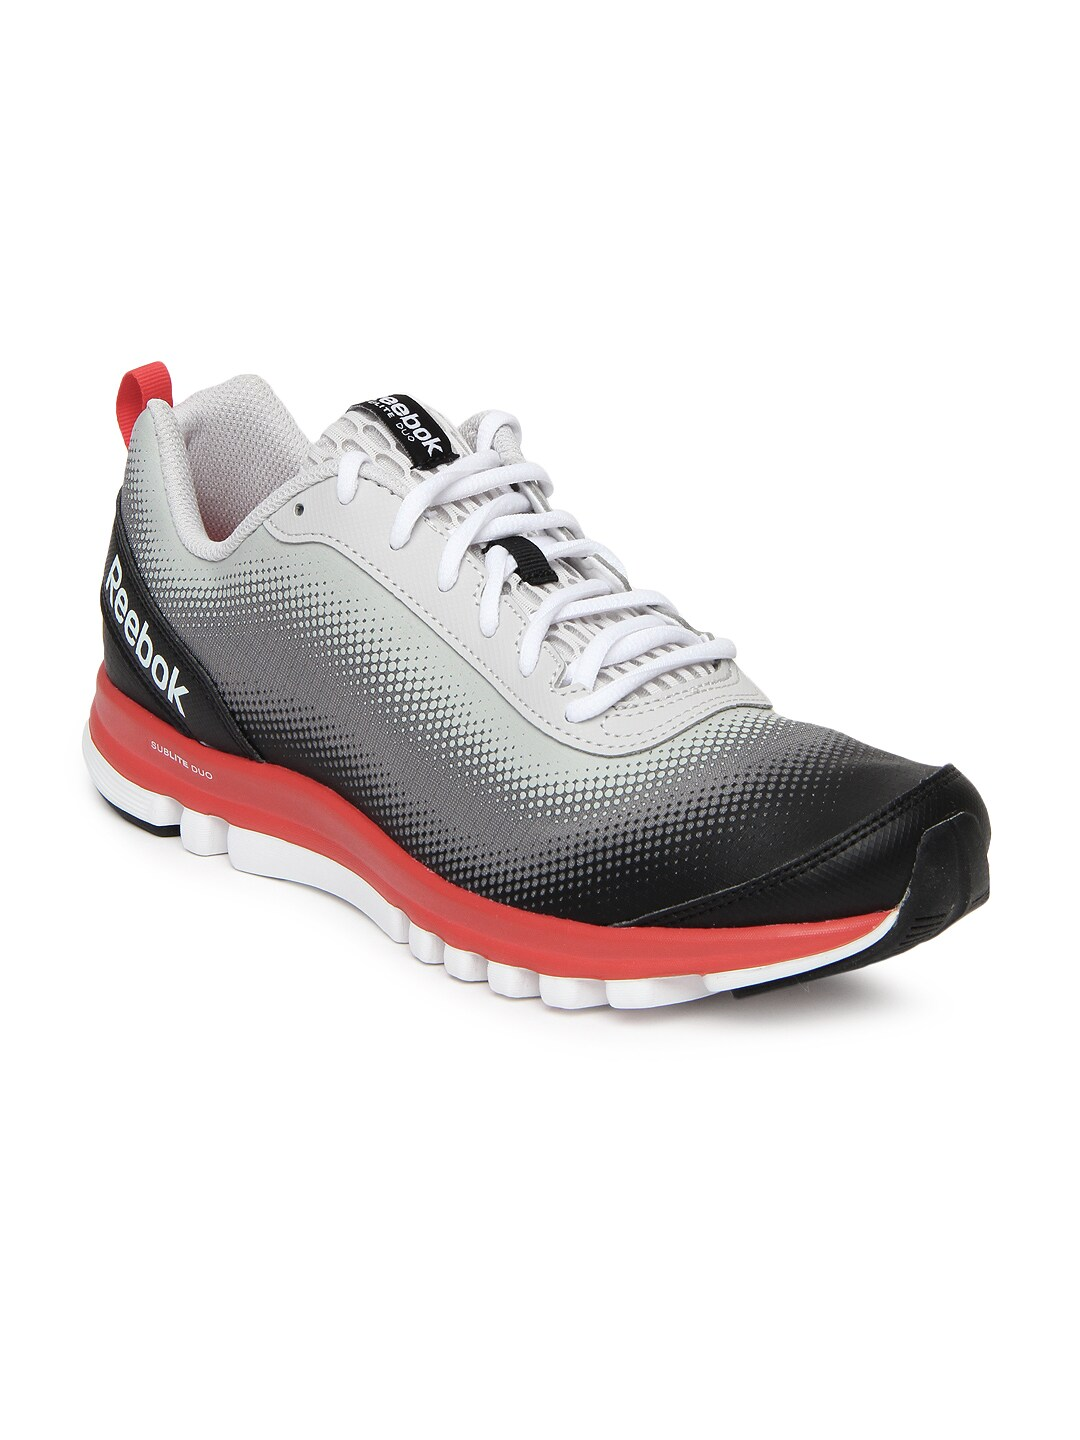 a5724e537bc Reebok m40811 Men Grey Black Sublite Duo Running Shoes- Price in India